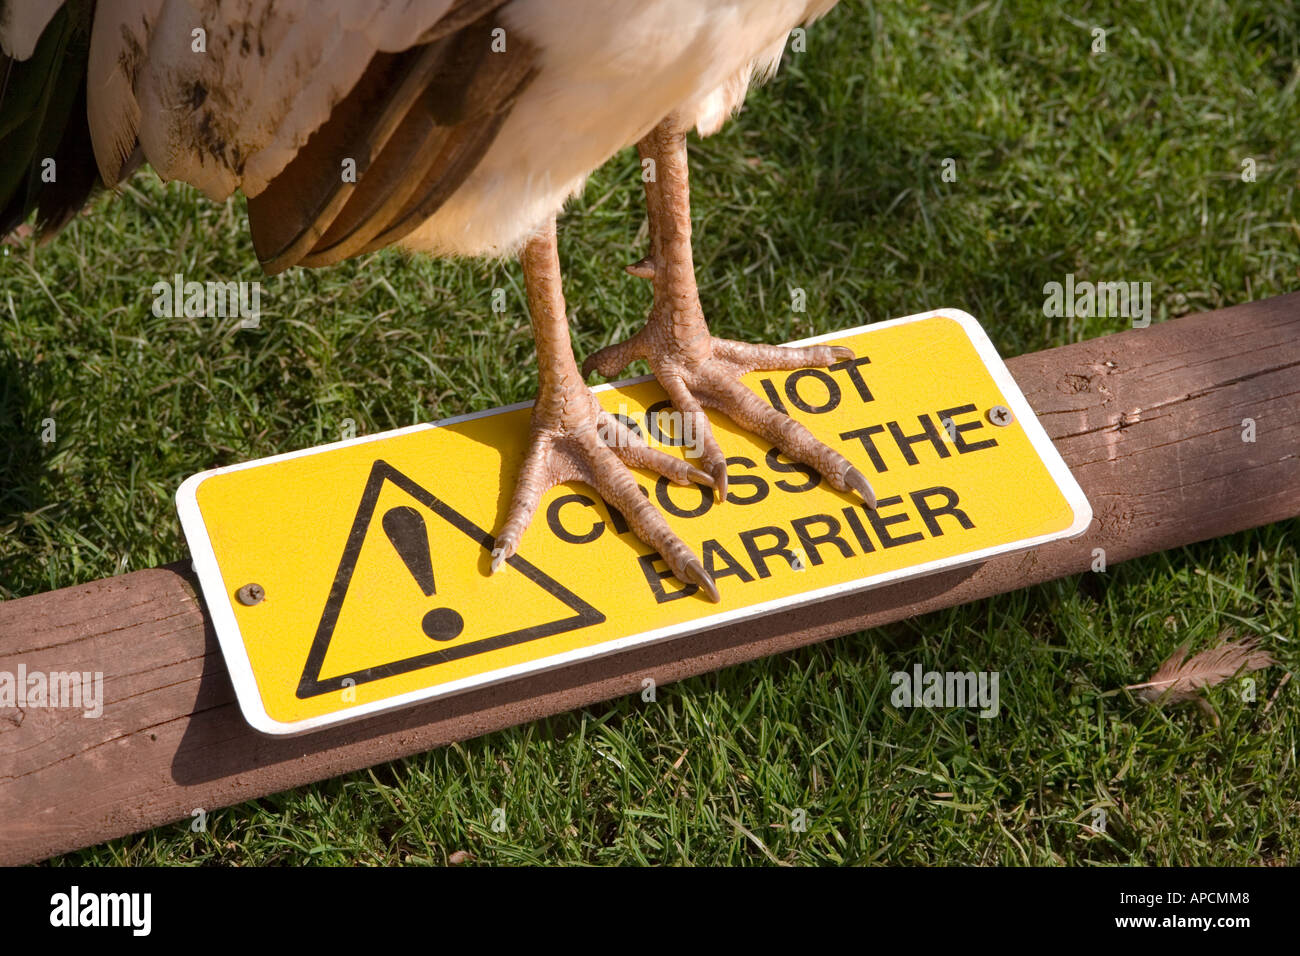 Birds feet crossing a 'do not cross barrier' - Stock Image